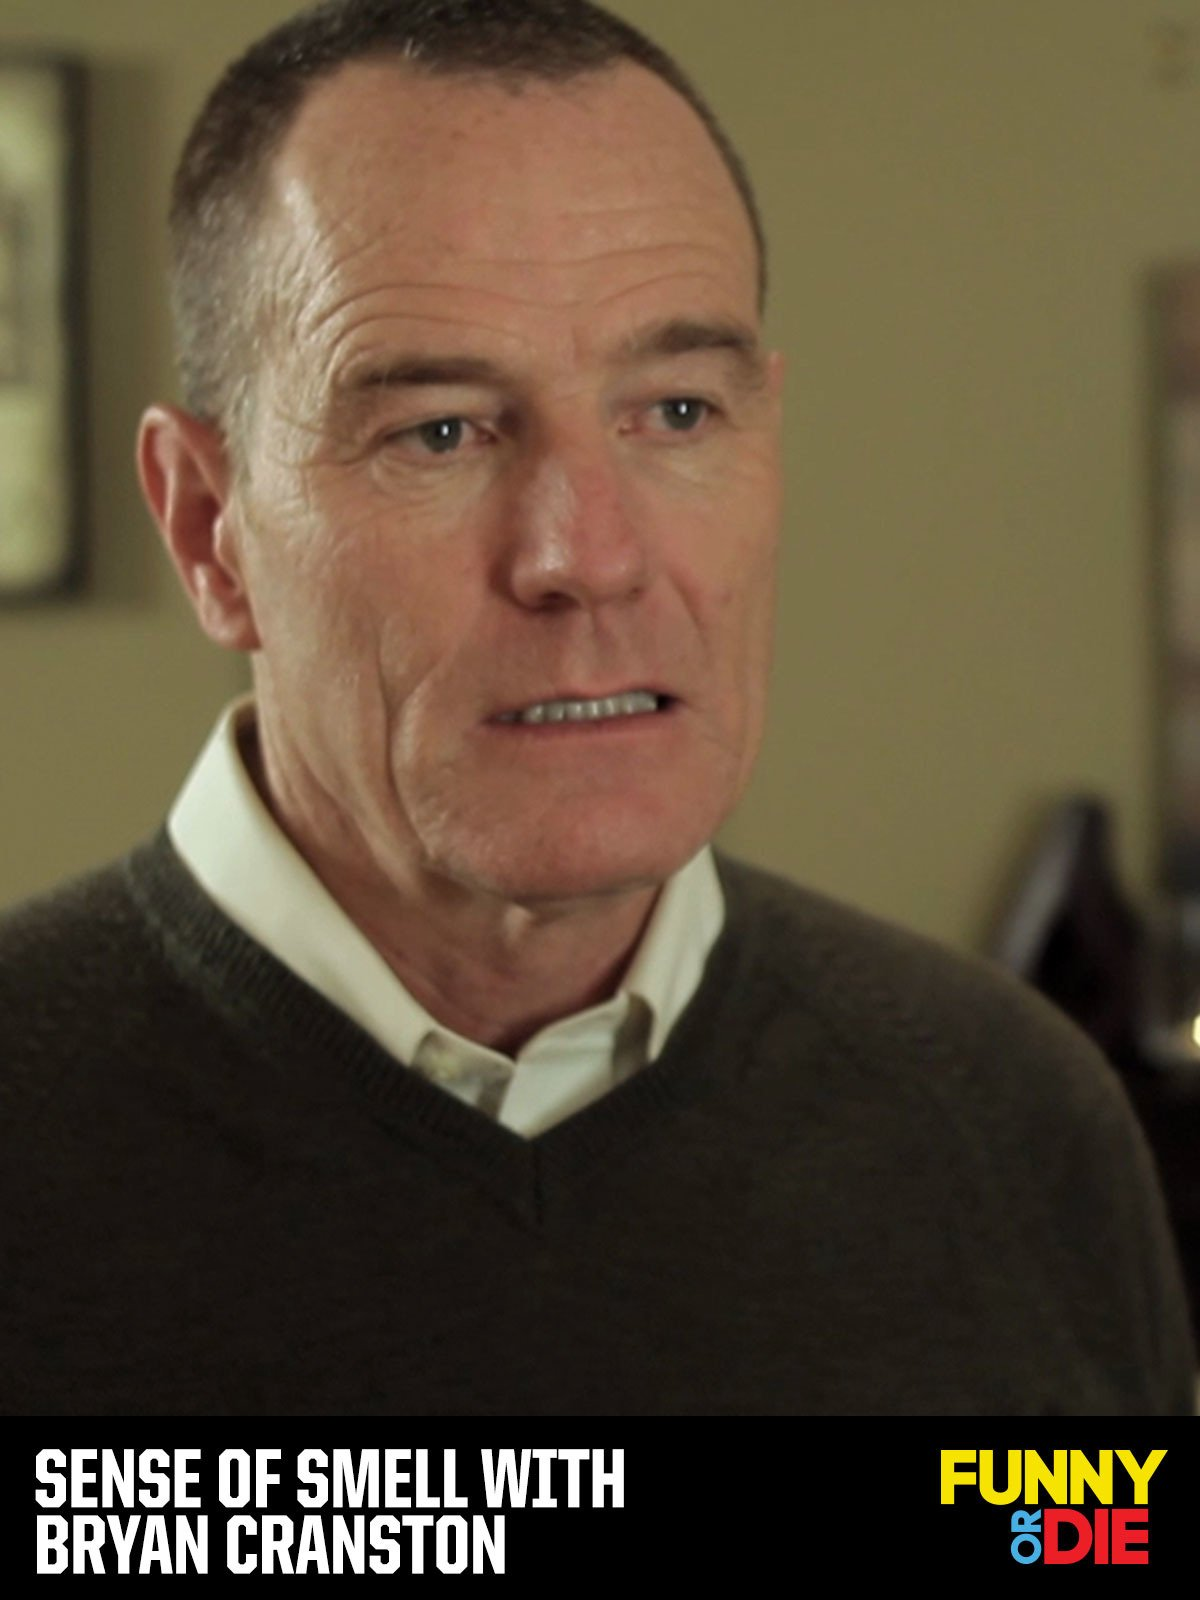 Sense of Smell with Bryan Cranston